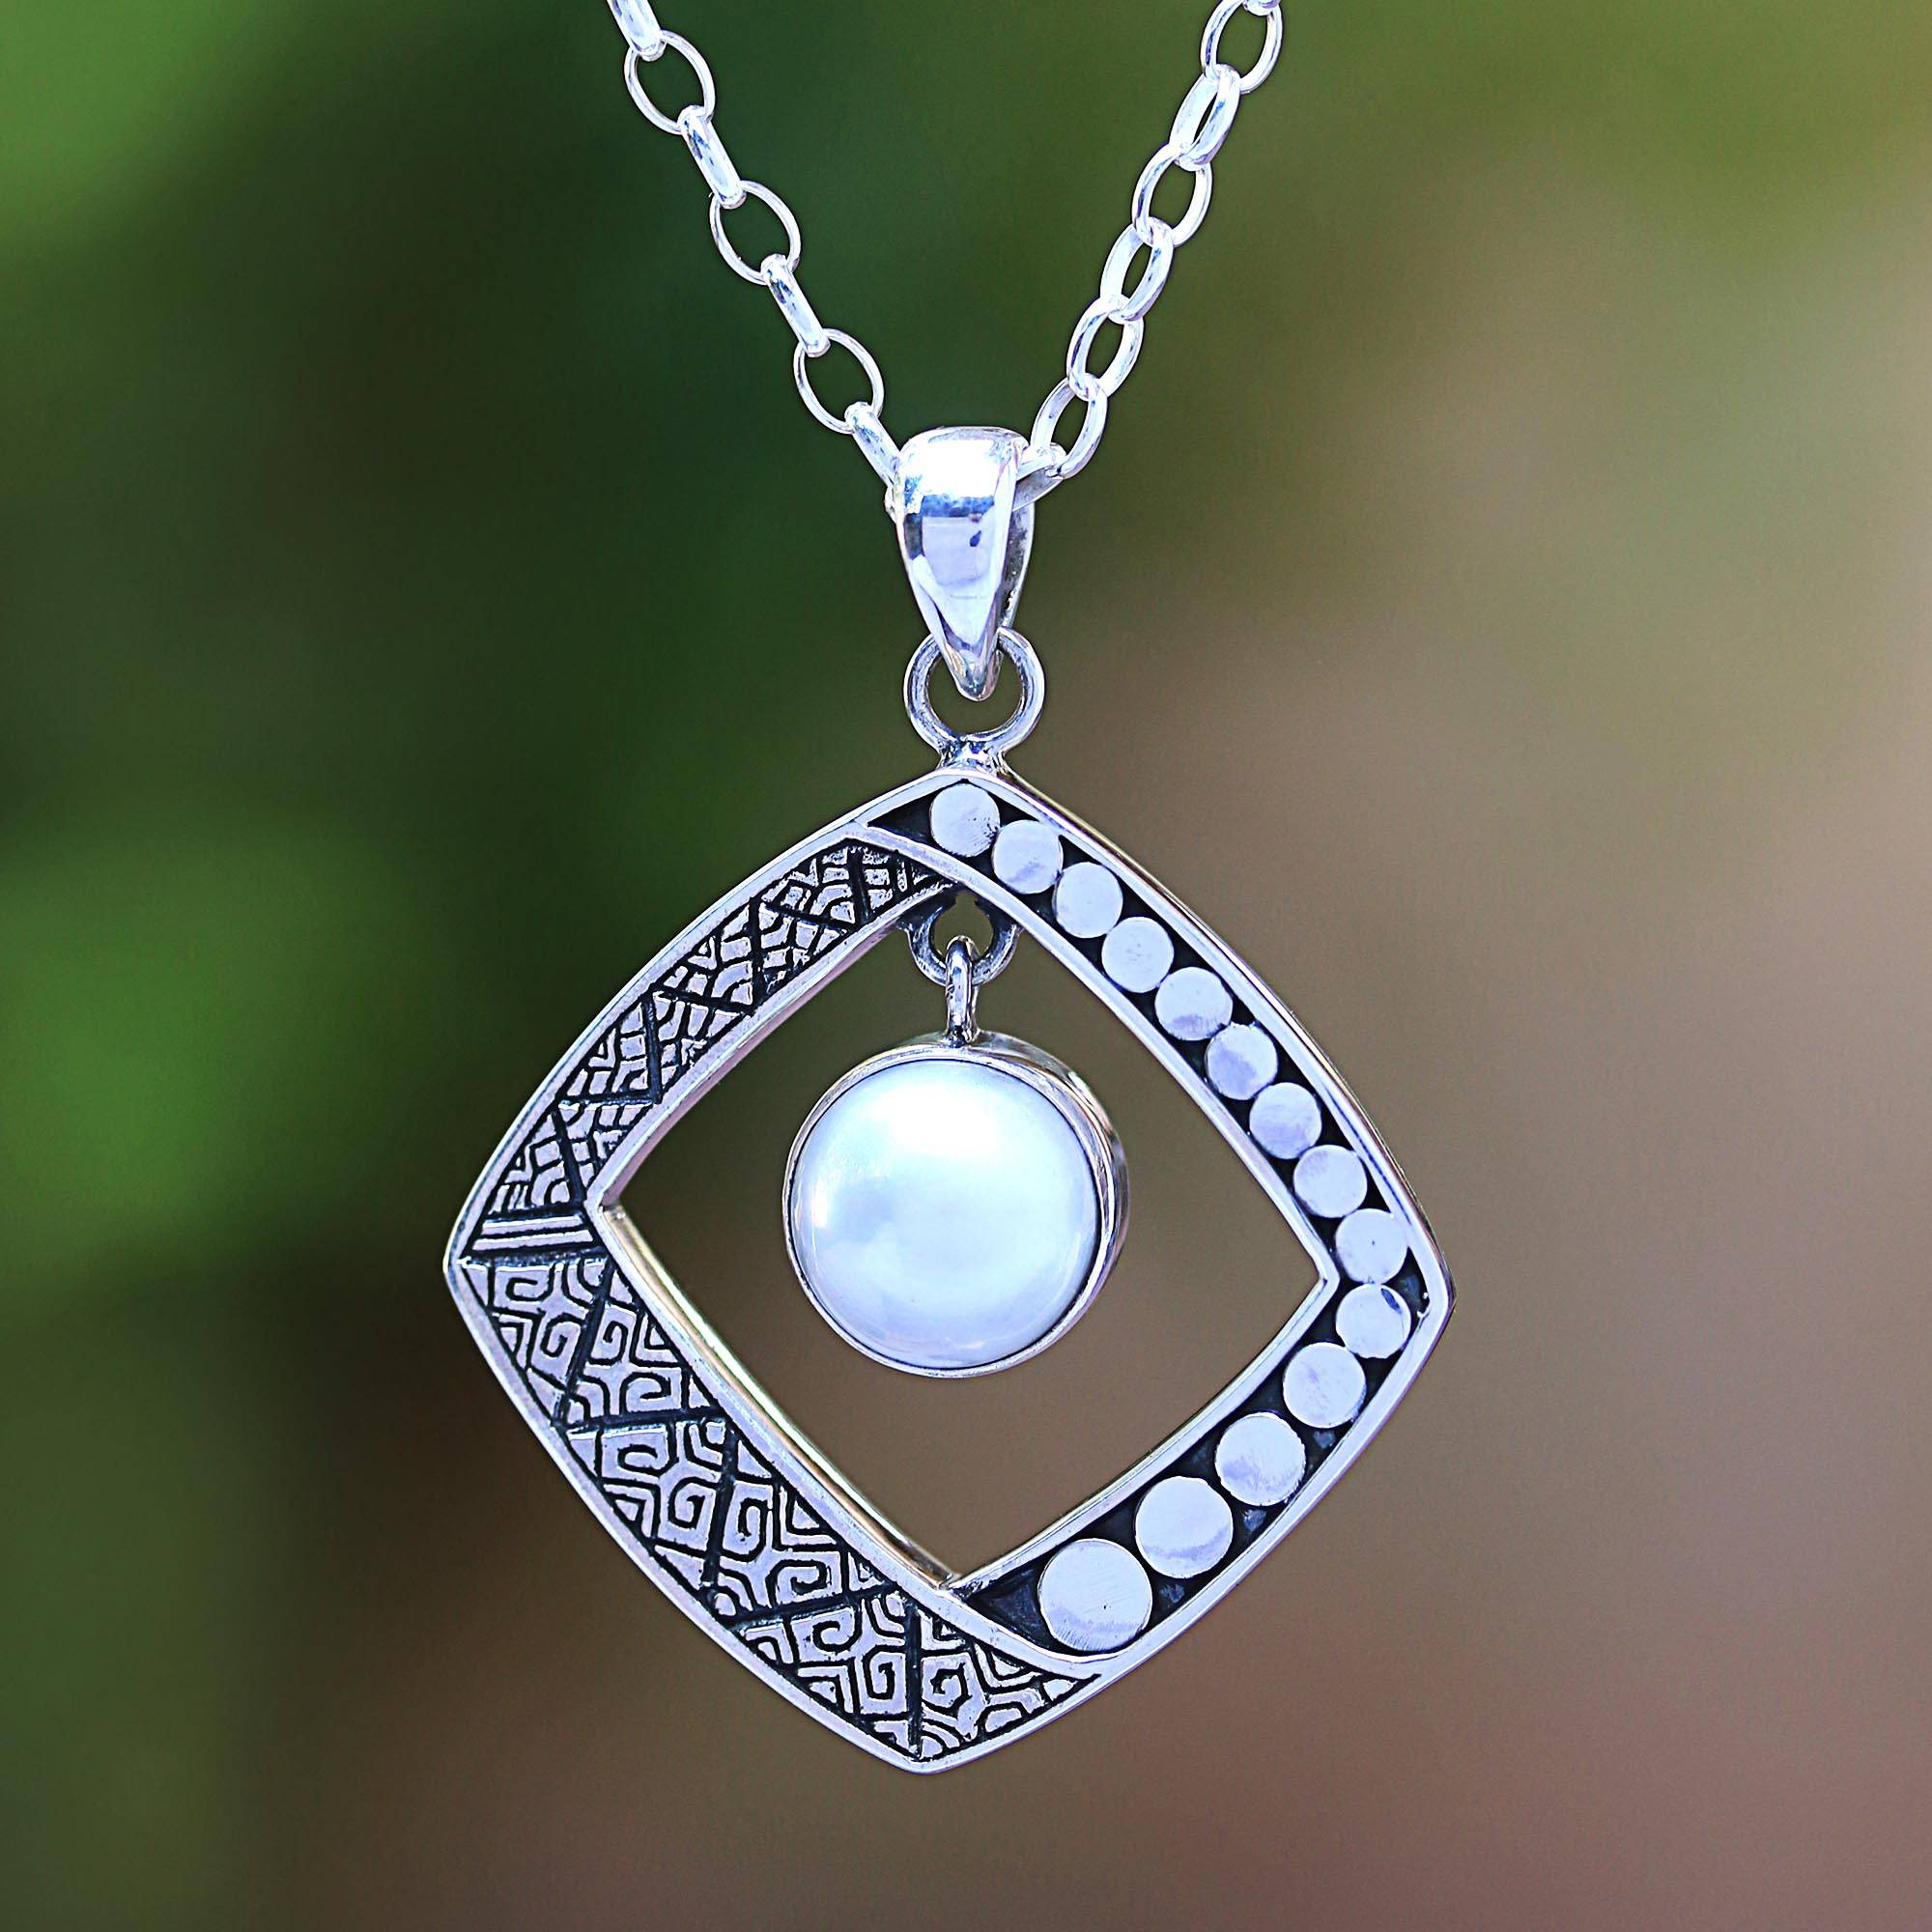 White Cultured Pearl Pendant Necklace From Bali, 'moon Gate' For Most Recently Released Gate Of Love Necklaces (View 13 of 25)